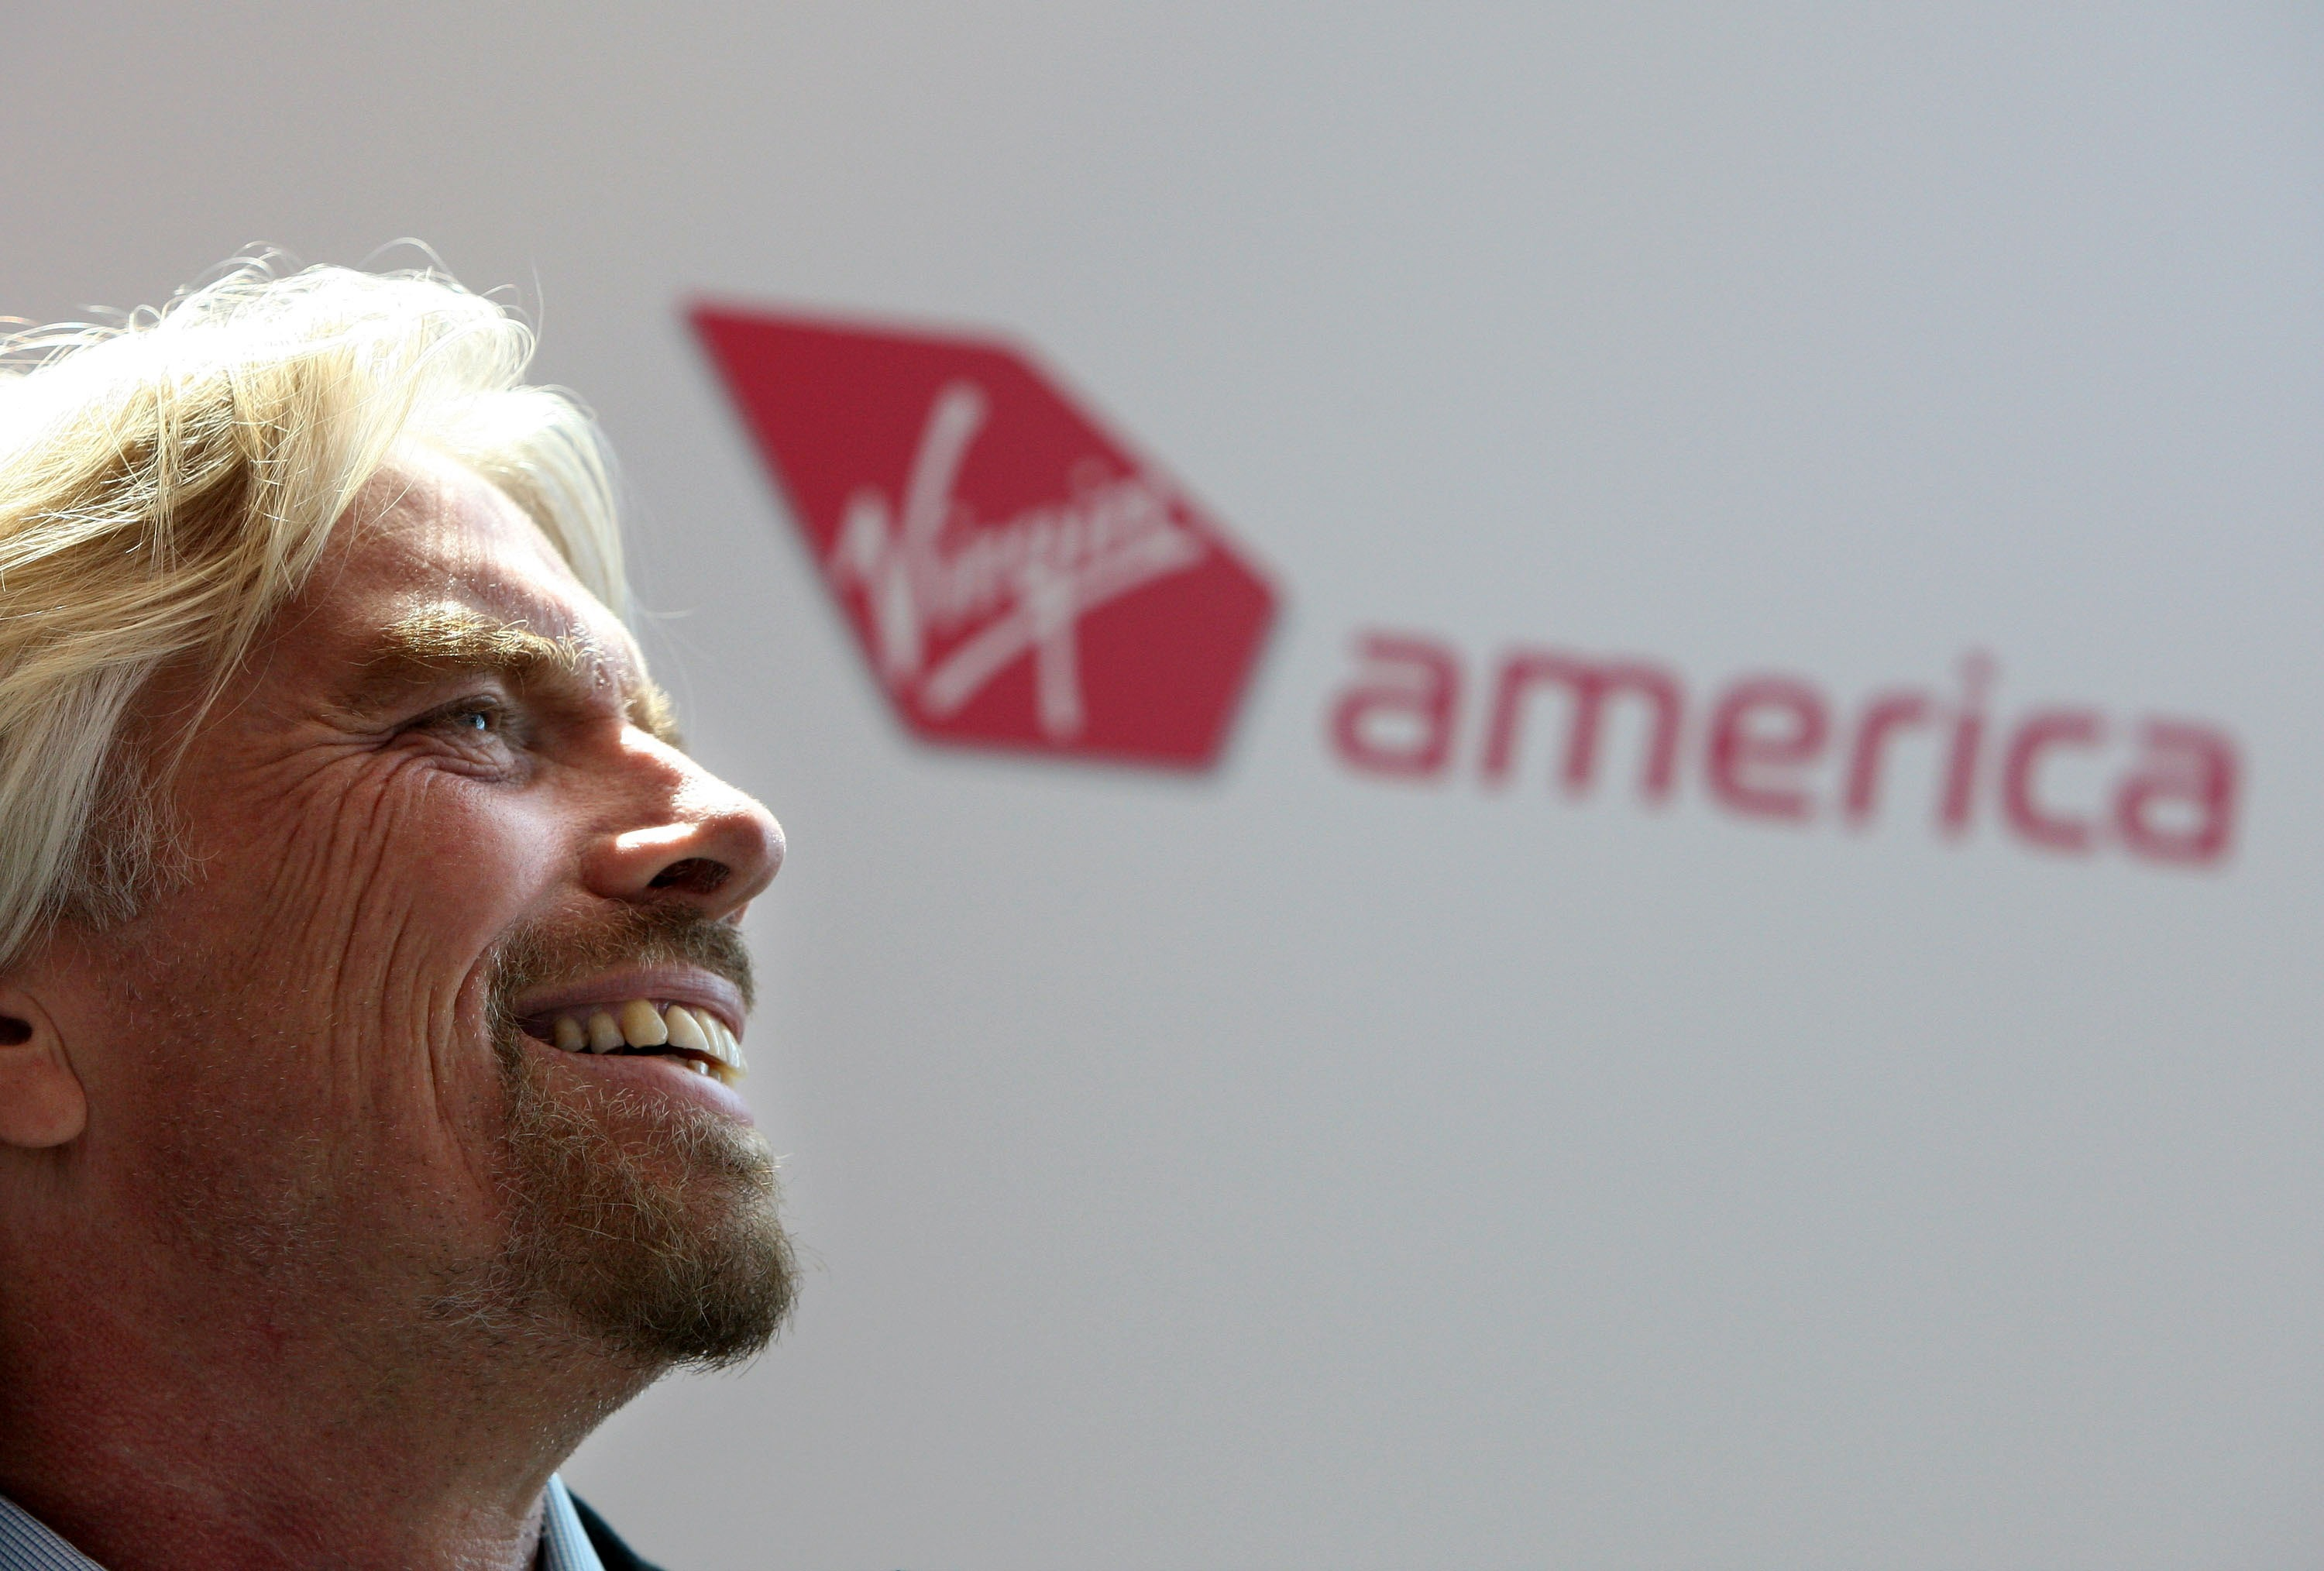 Virgin America Joins Ranks Of U.S. Low-Fare Airlines